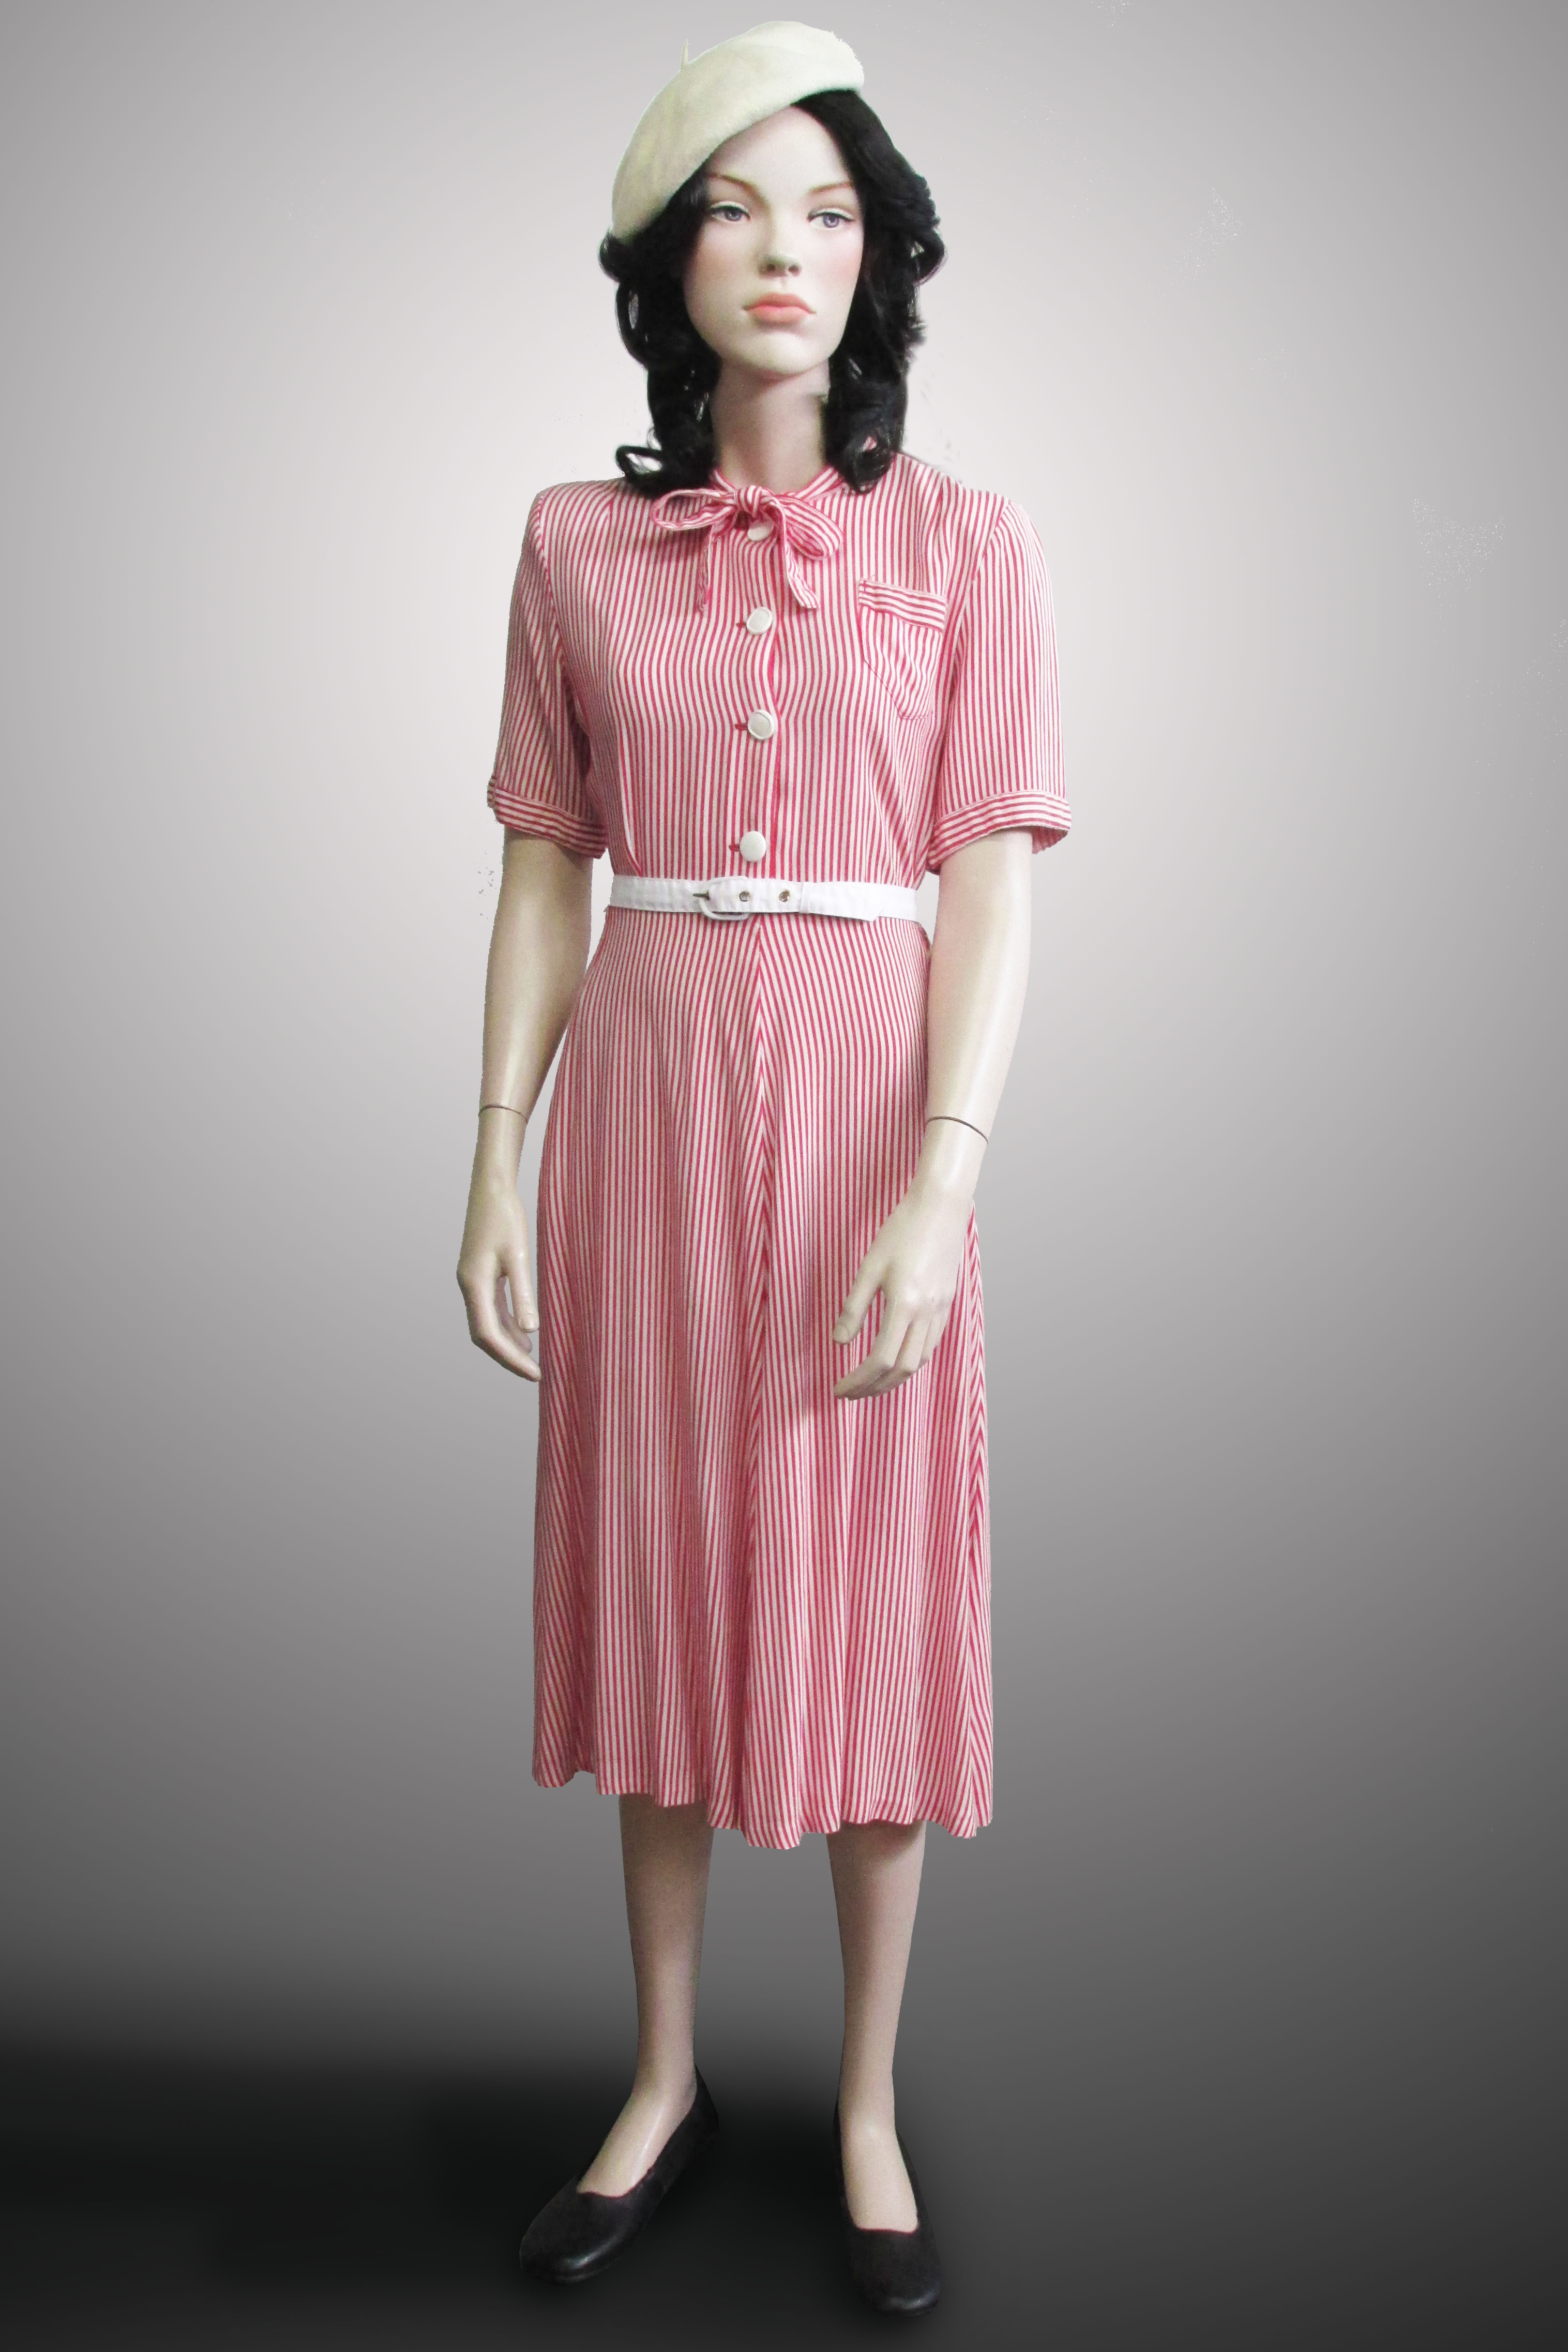 Dress White/Red Stripe with Bow 1940s